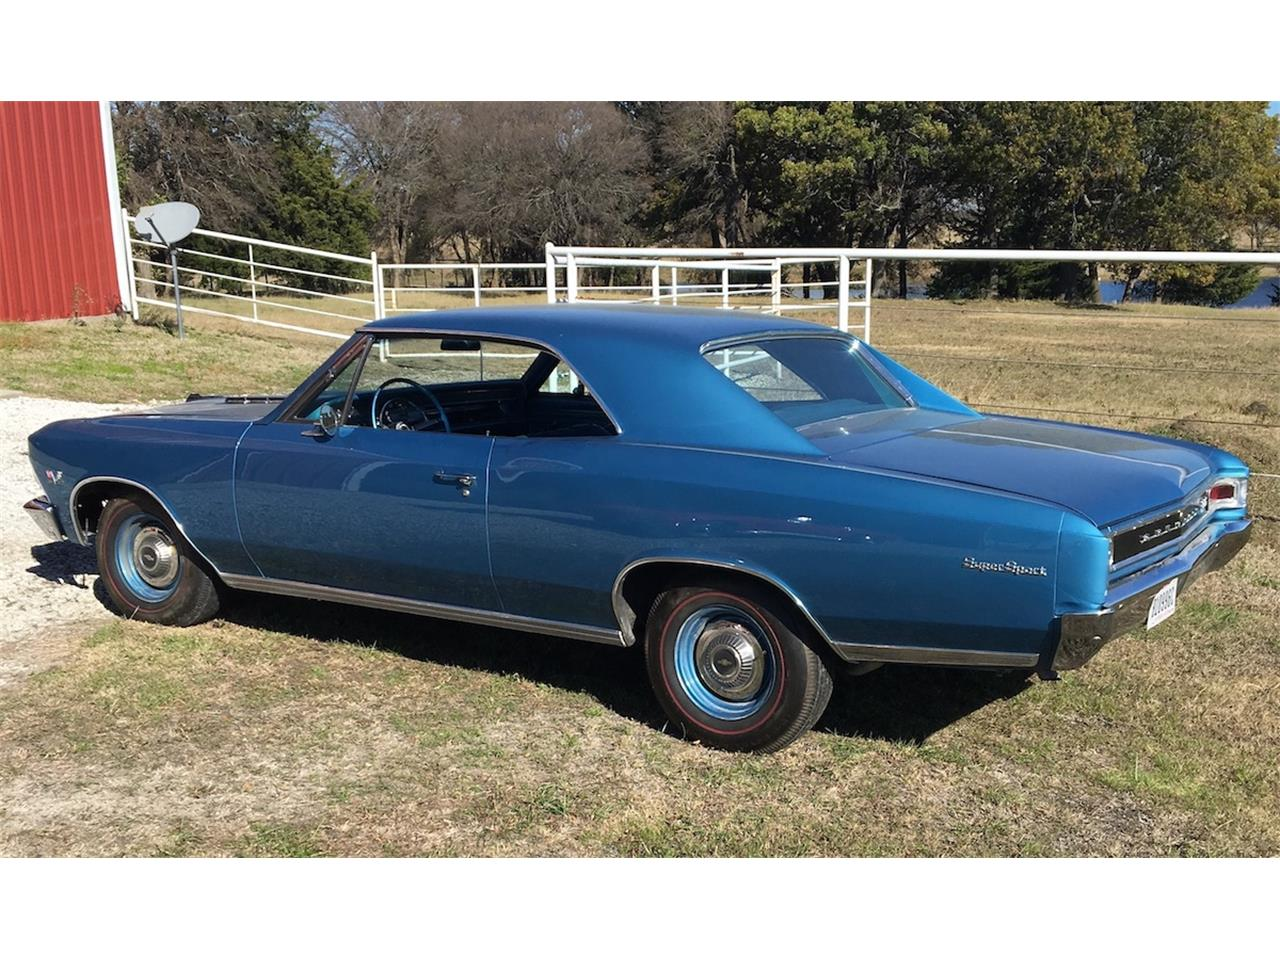 Large Picture of '66 Chevrolet Chevelle SS located in Allen Texas Auction Vehicle Offered by Duncan's Auctions - P152